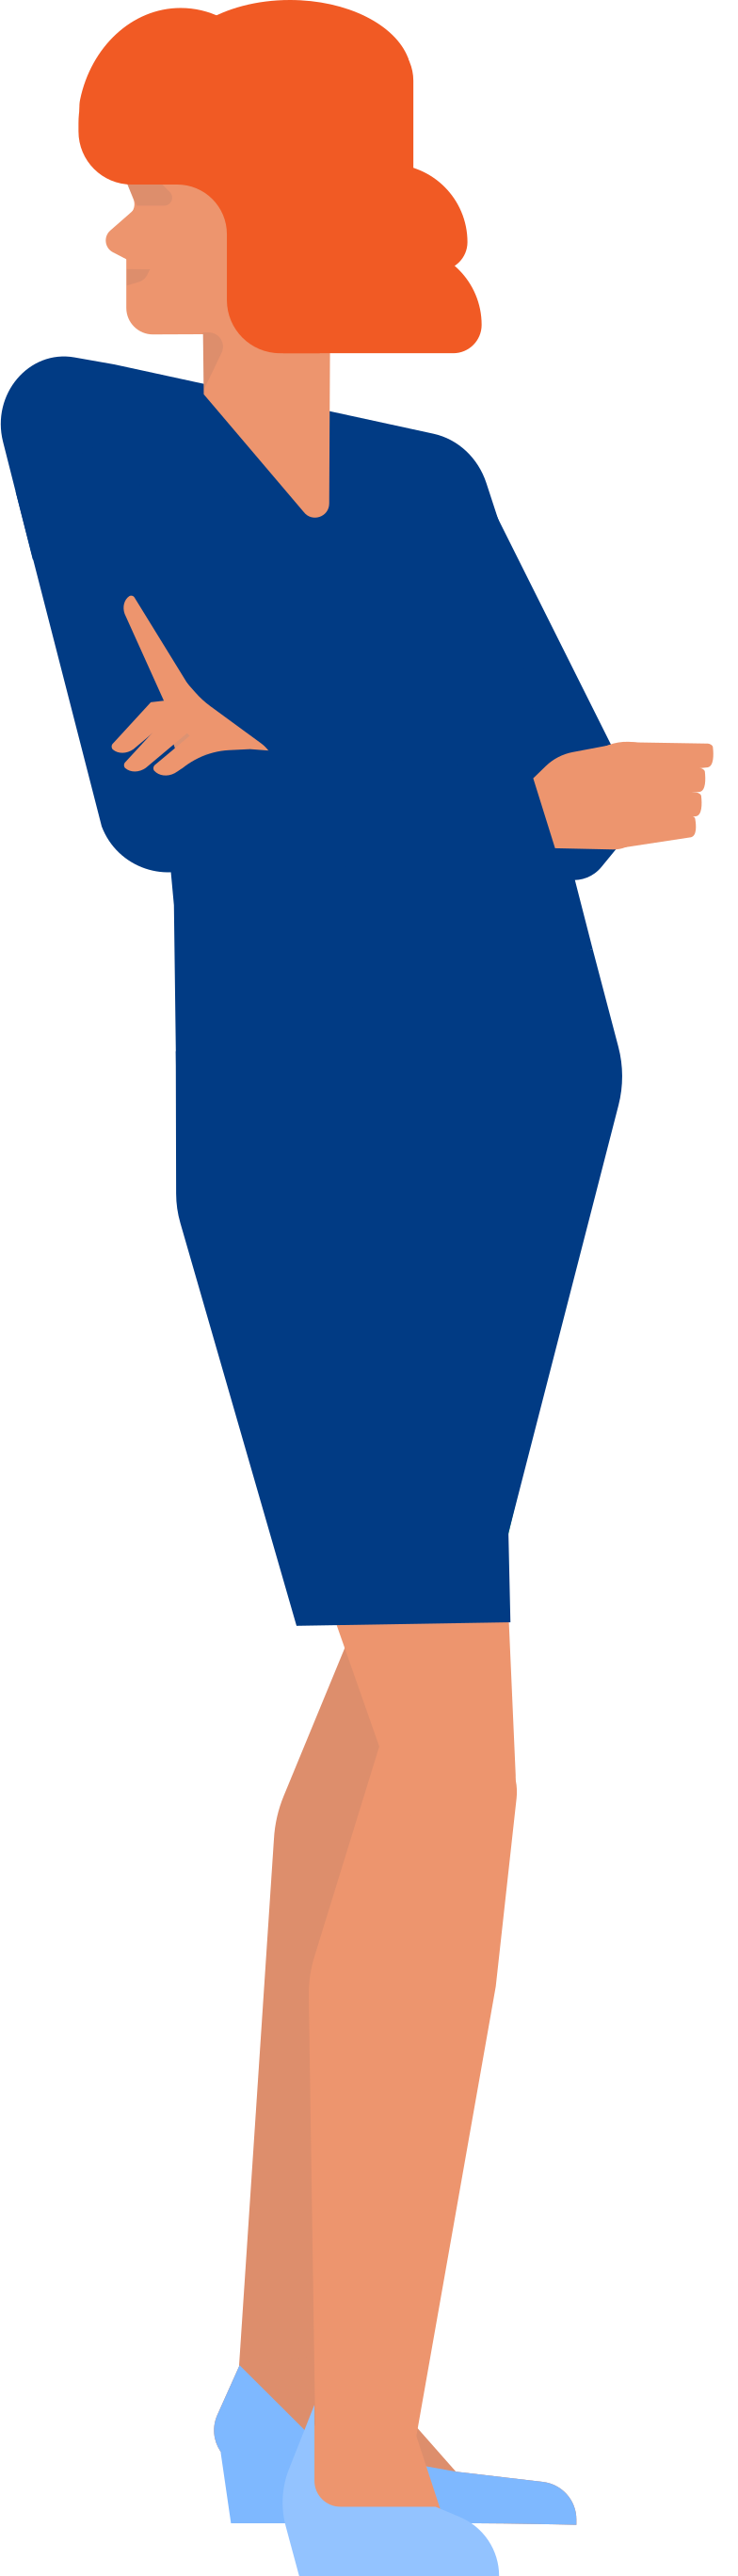 woman in lbd Clipart illustration in PNG, SVG